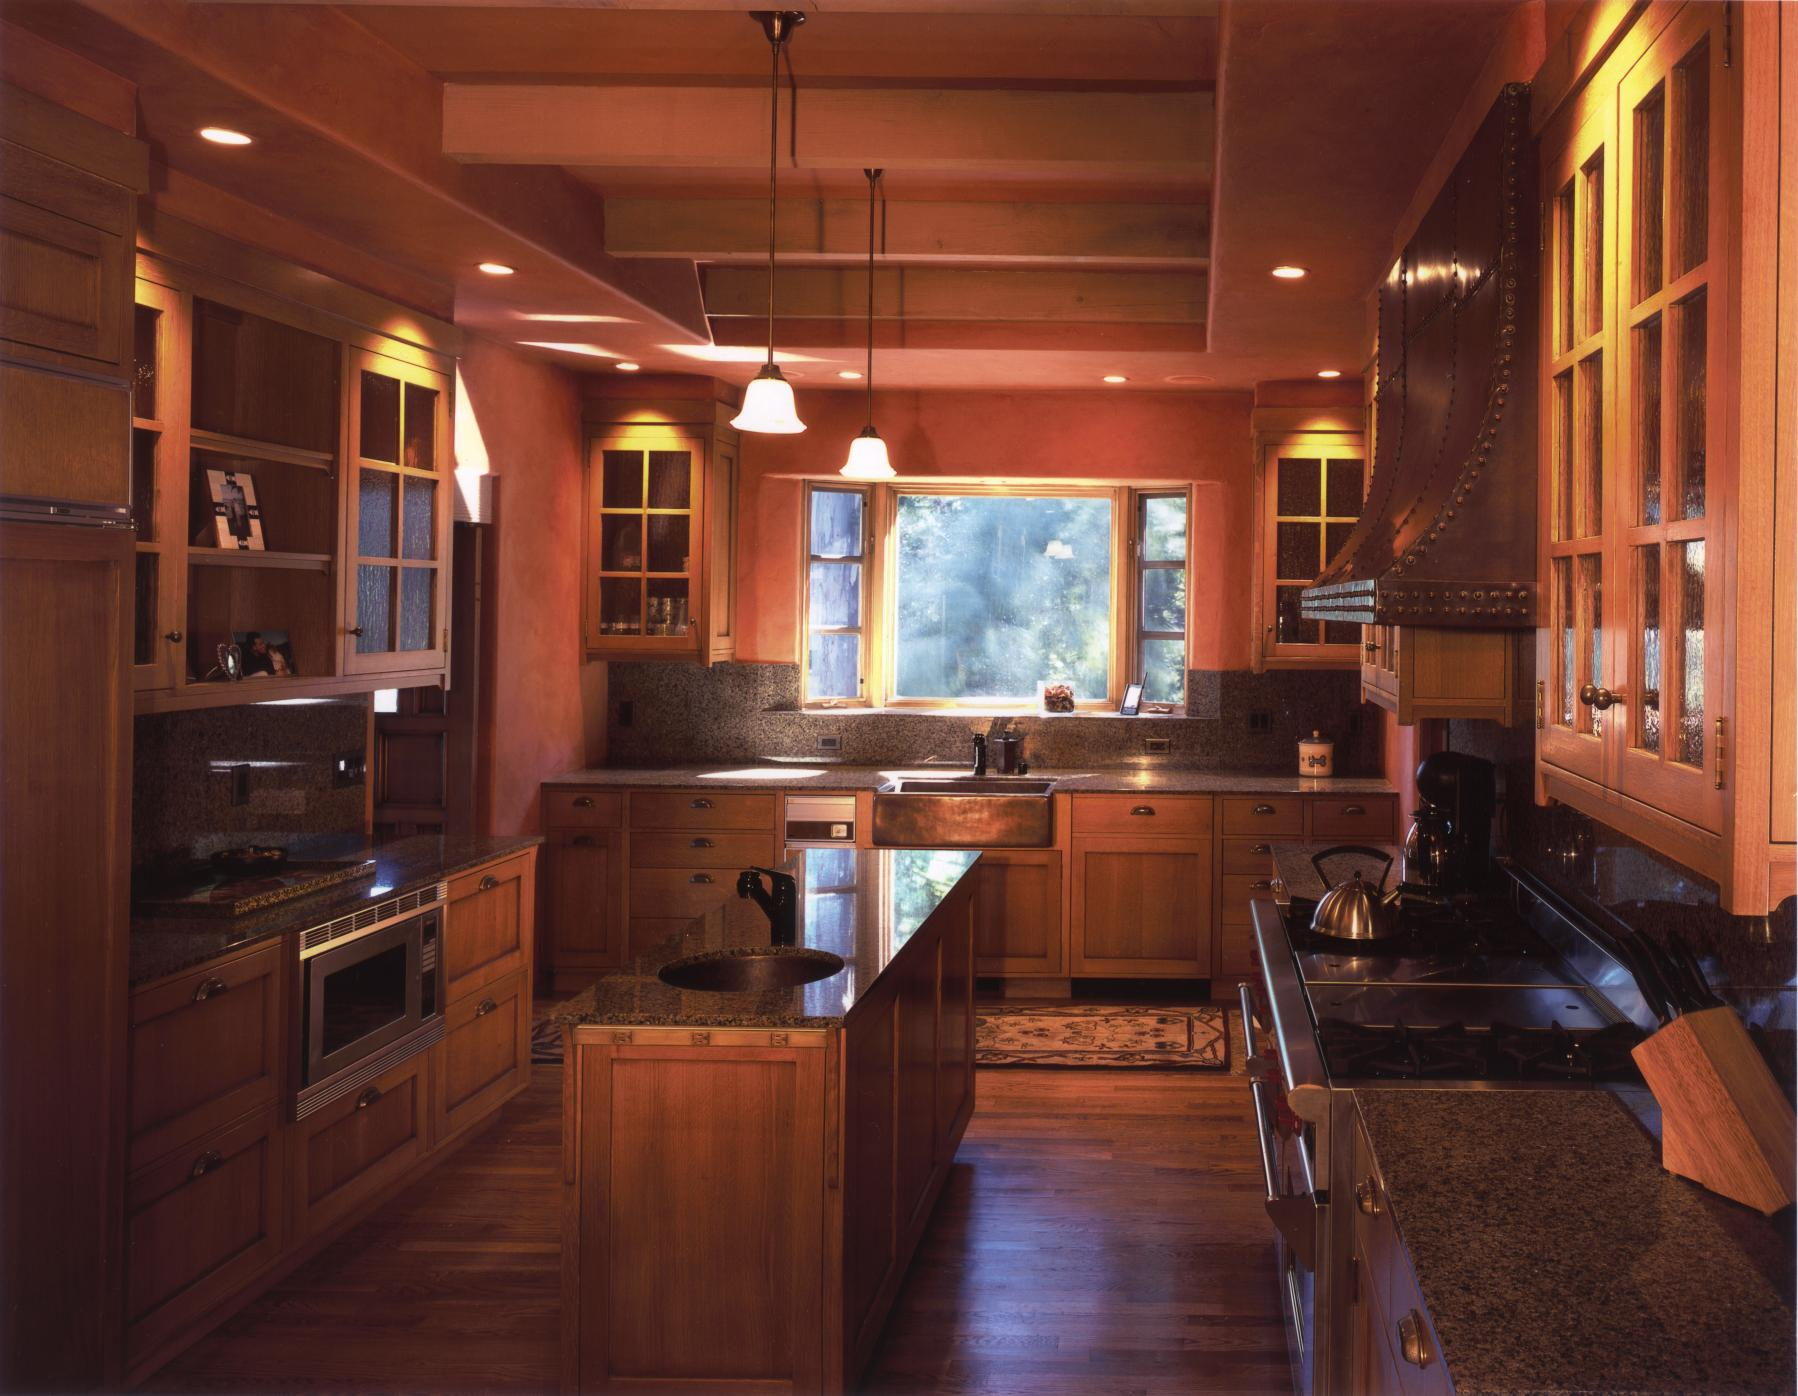 Interior Designs for the Kitchen